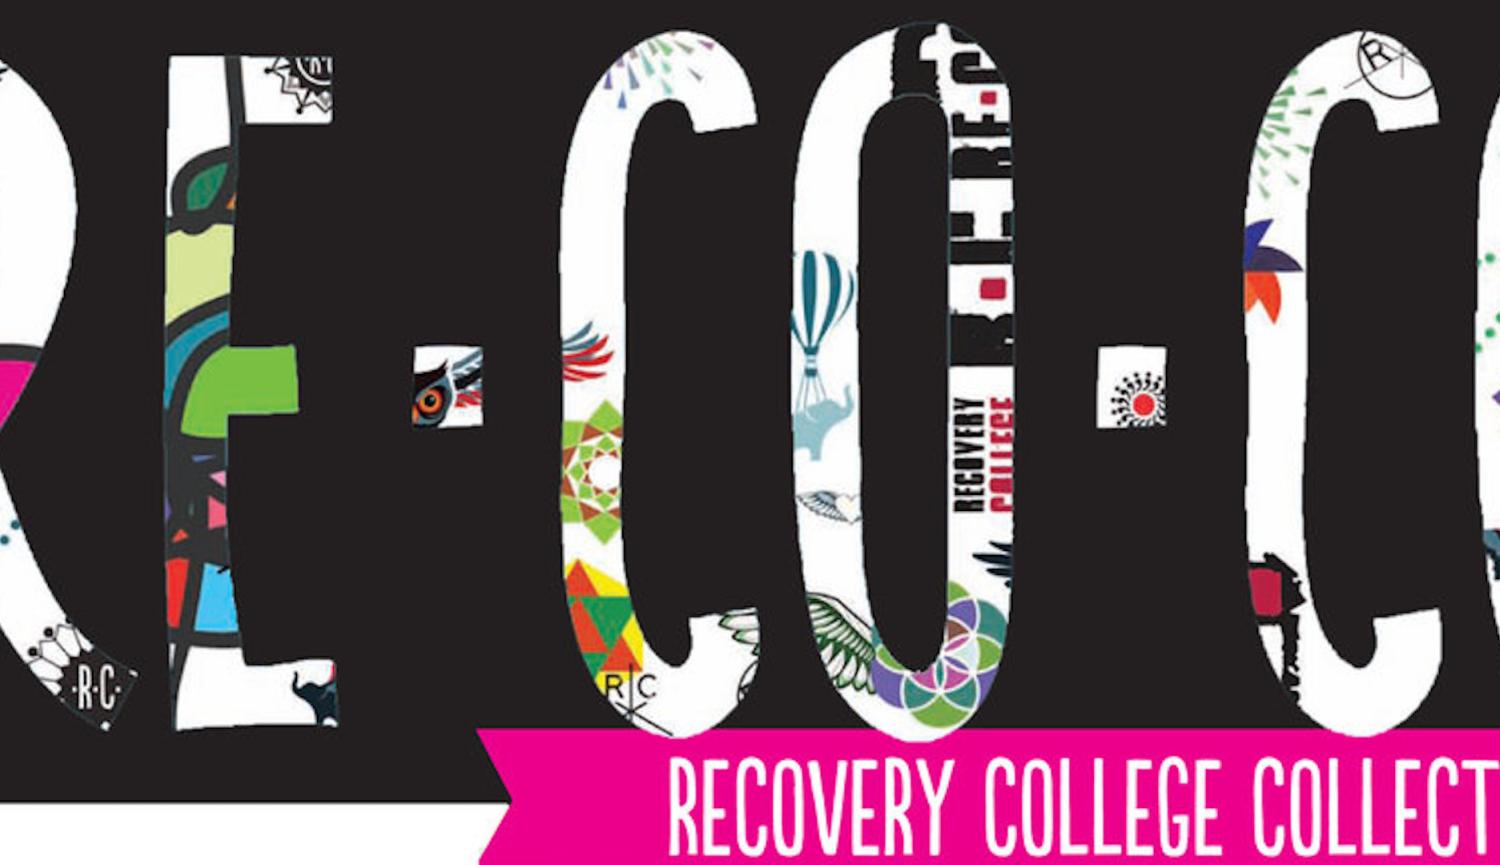 Recovery College Collective logo - Re-Co-Co